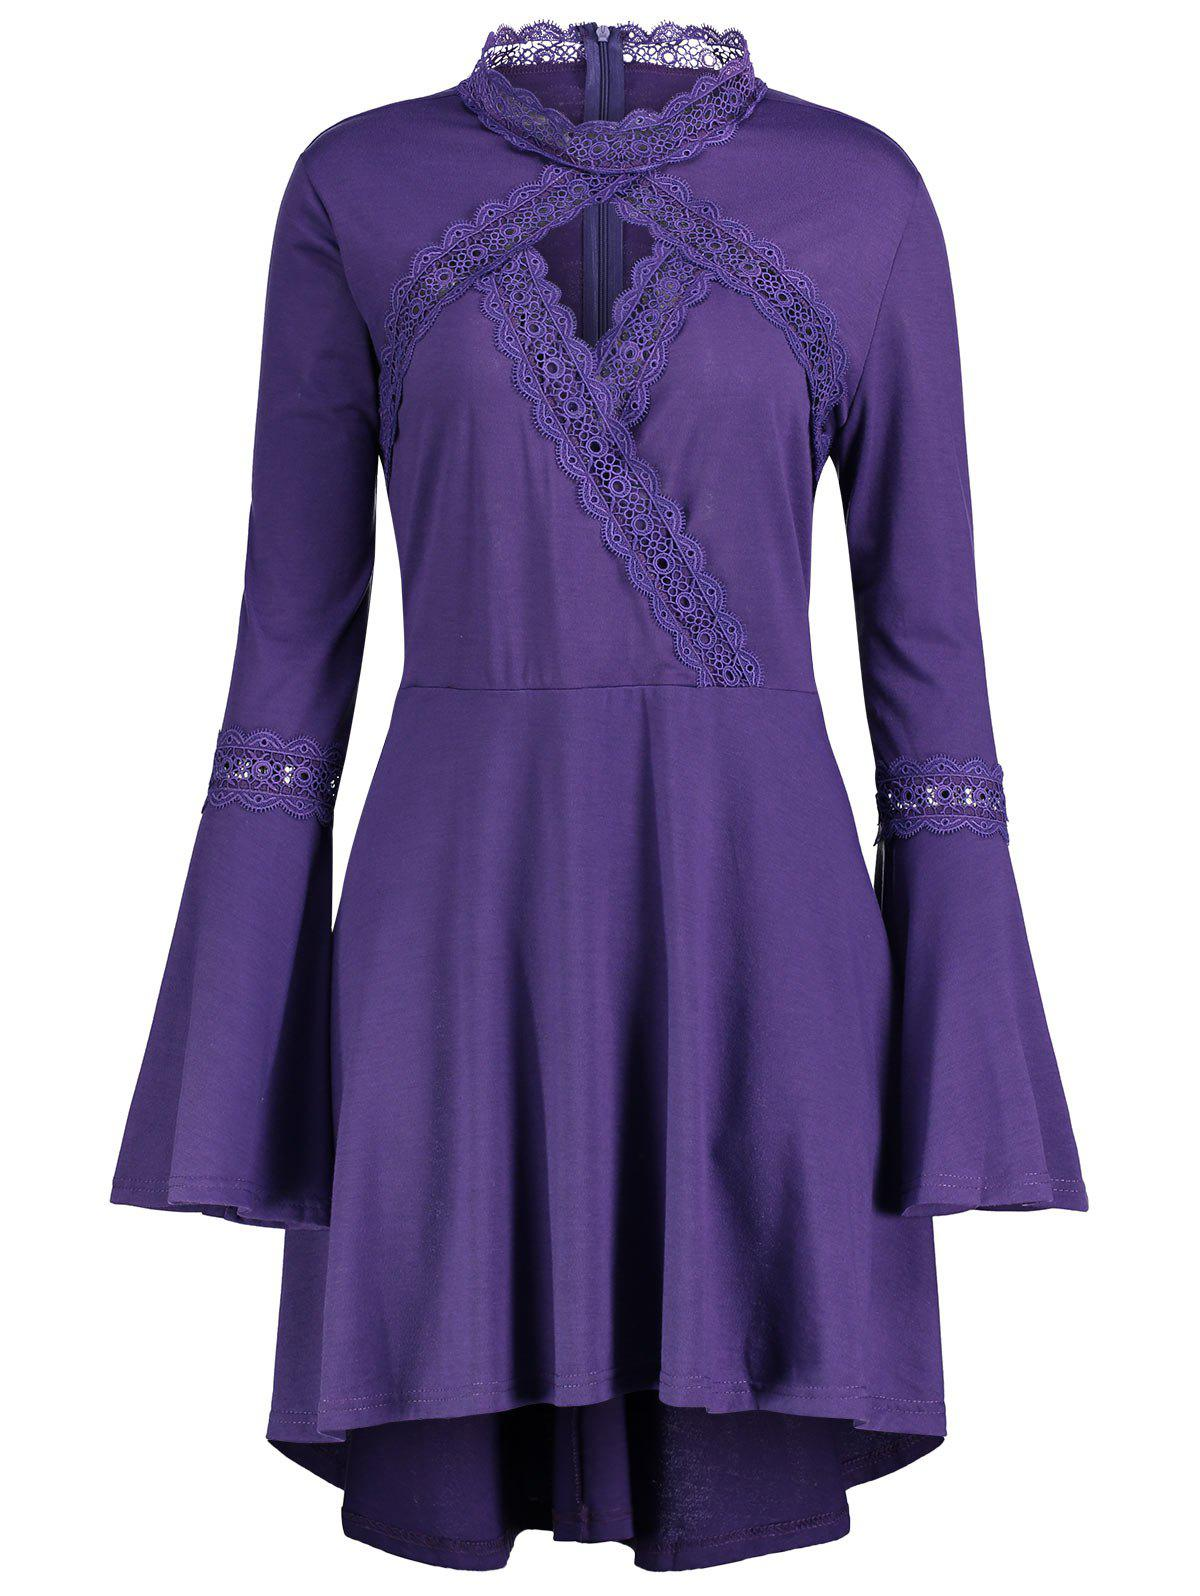 Cut Out Plus Size Long Sleeve Tunic Top - PURPLE 2XL